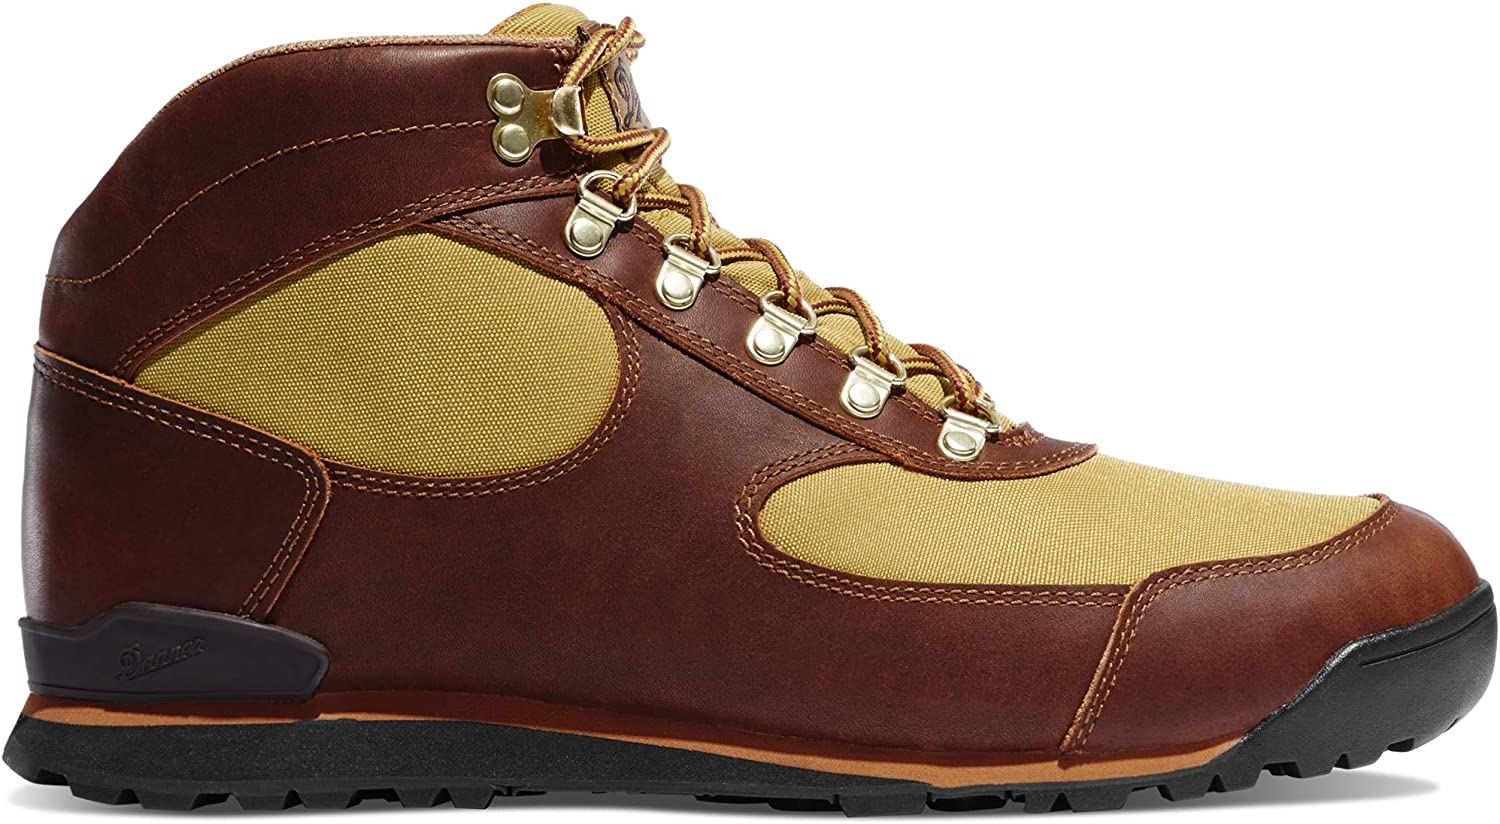 Danner Men s Jag 4.5 Waterproof Lifestyle Boot